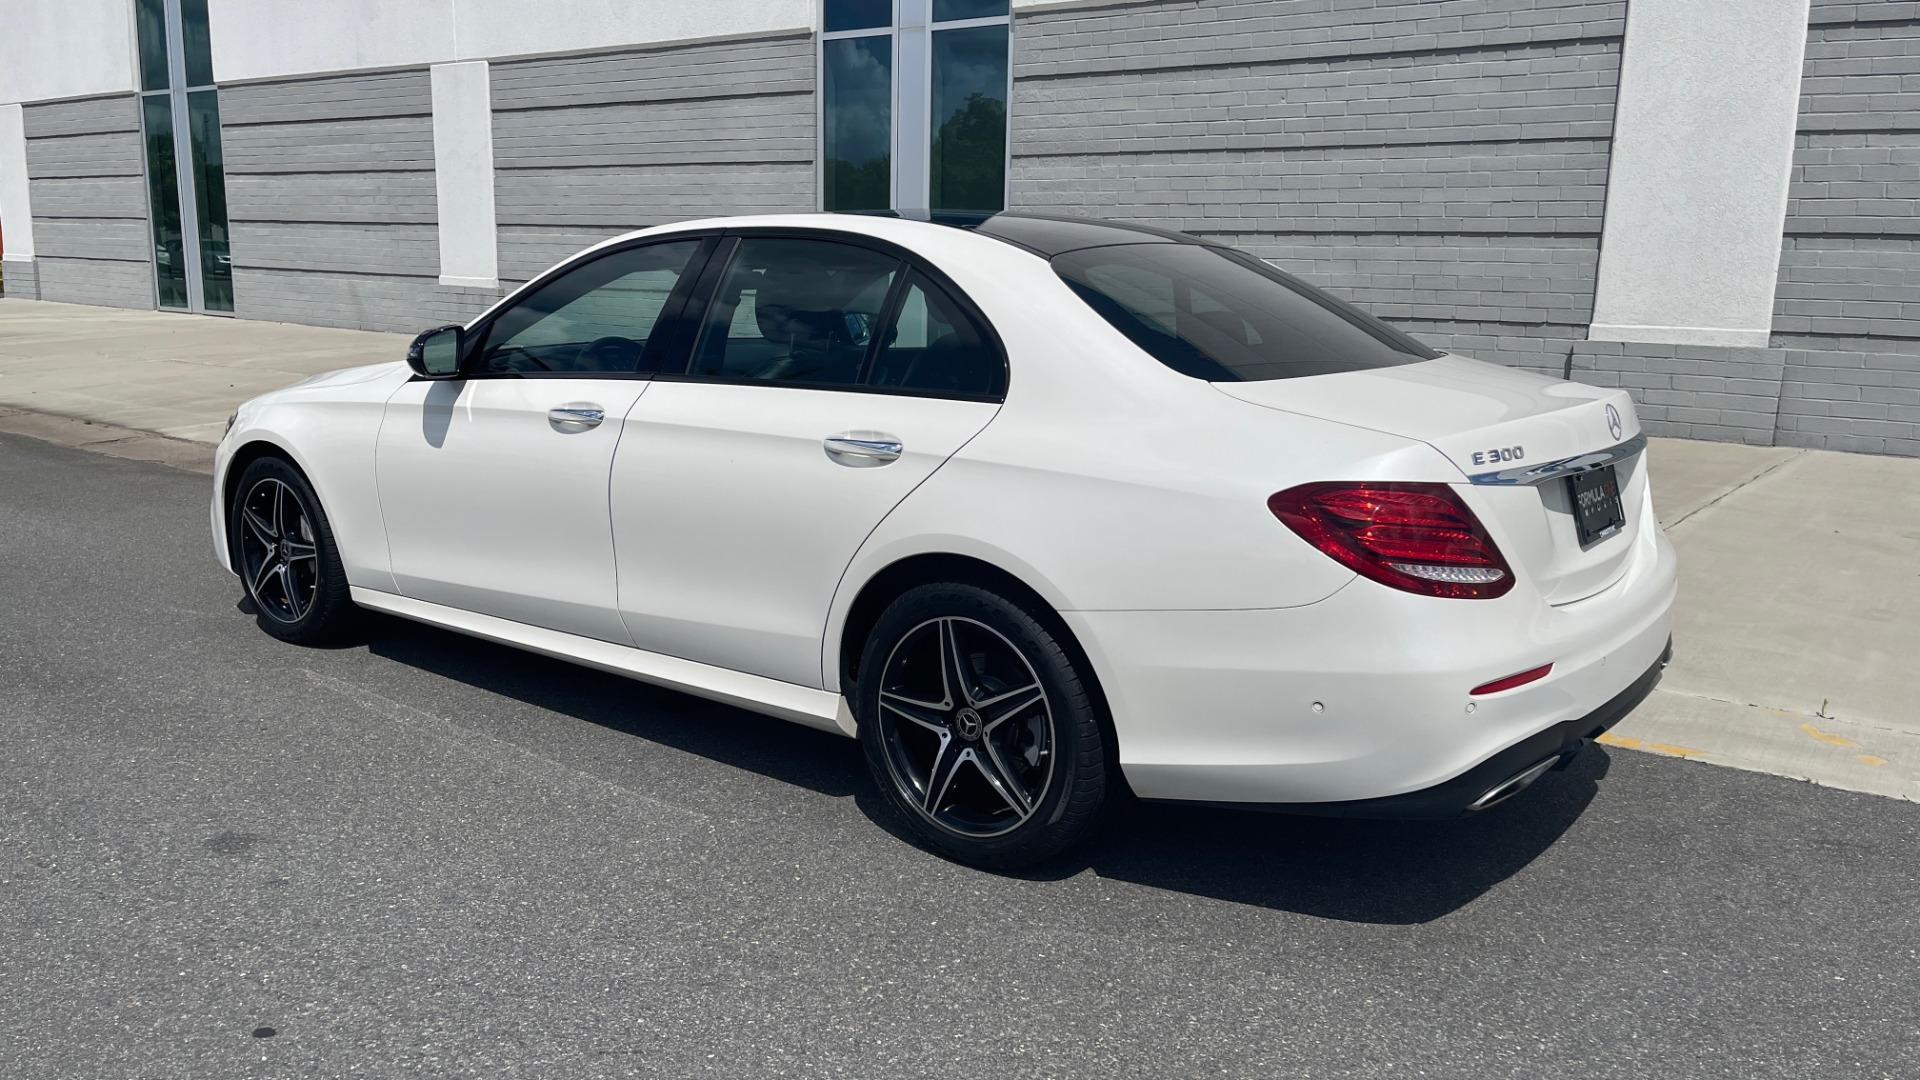 Used 2018 Mercedes-Benz E-CLASS E 300 PREMIUM / NIGHT PKG / PANO-ROOF / BURMESTER / REARVIEW for sale $42,399 at Formula Imports in Charlotte NC 28227 5